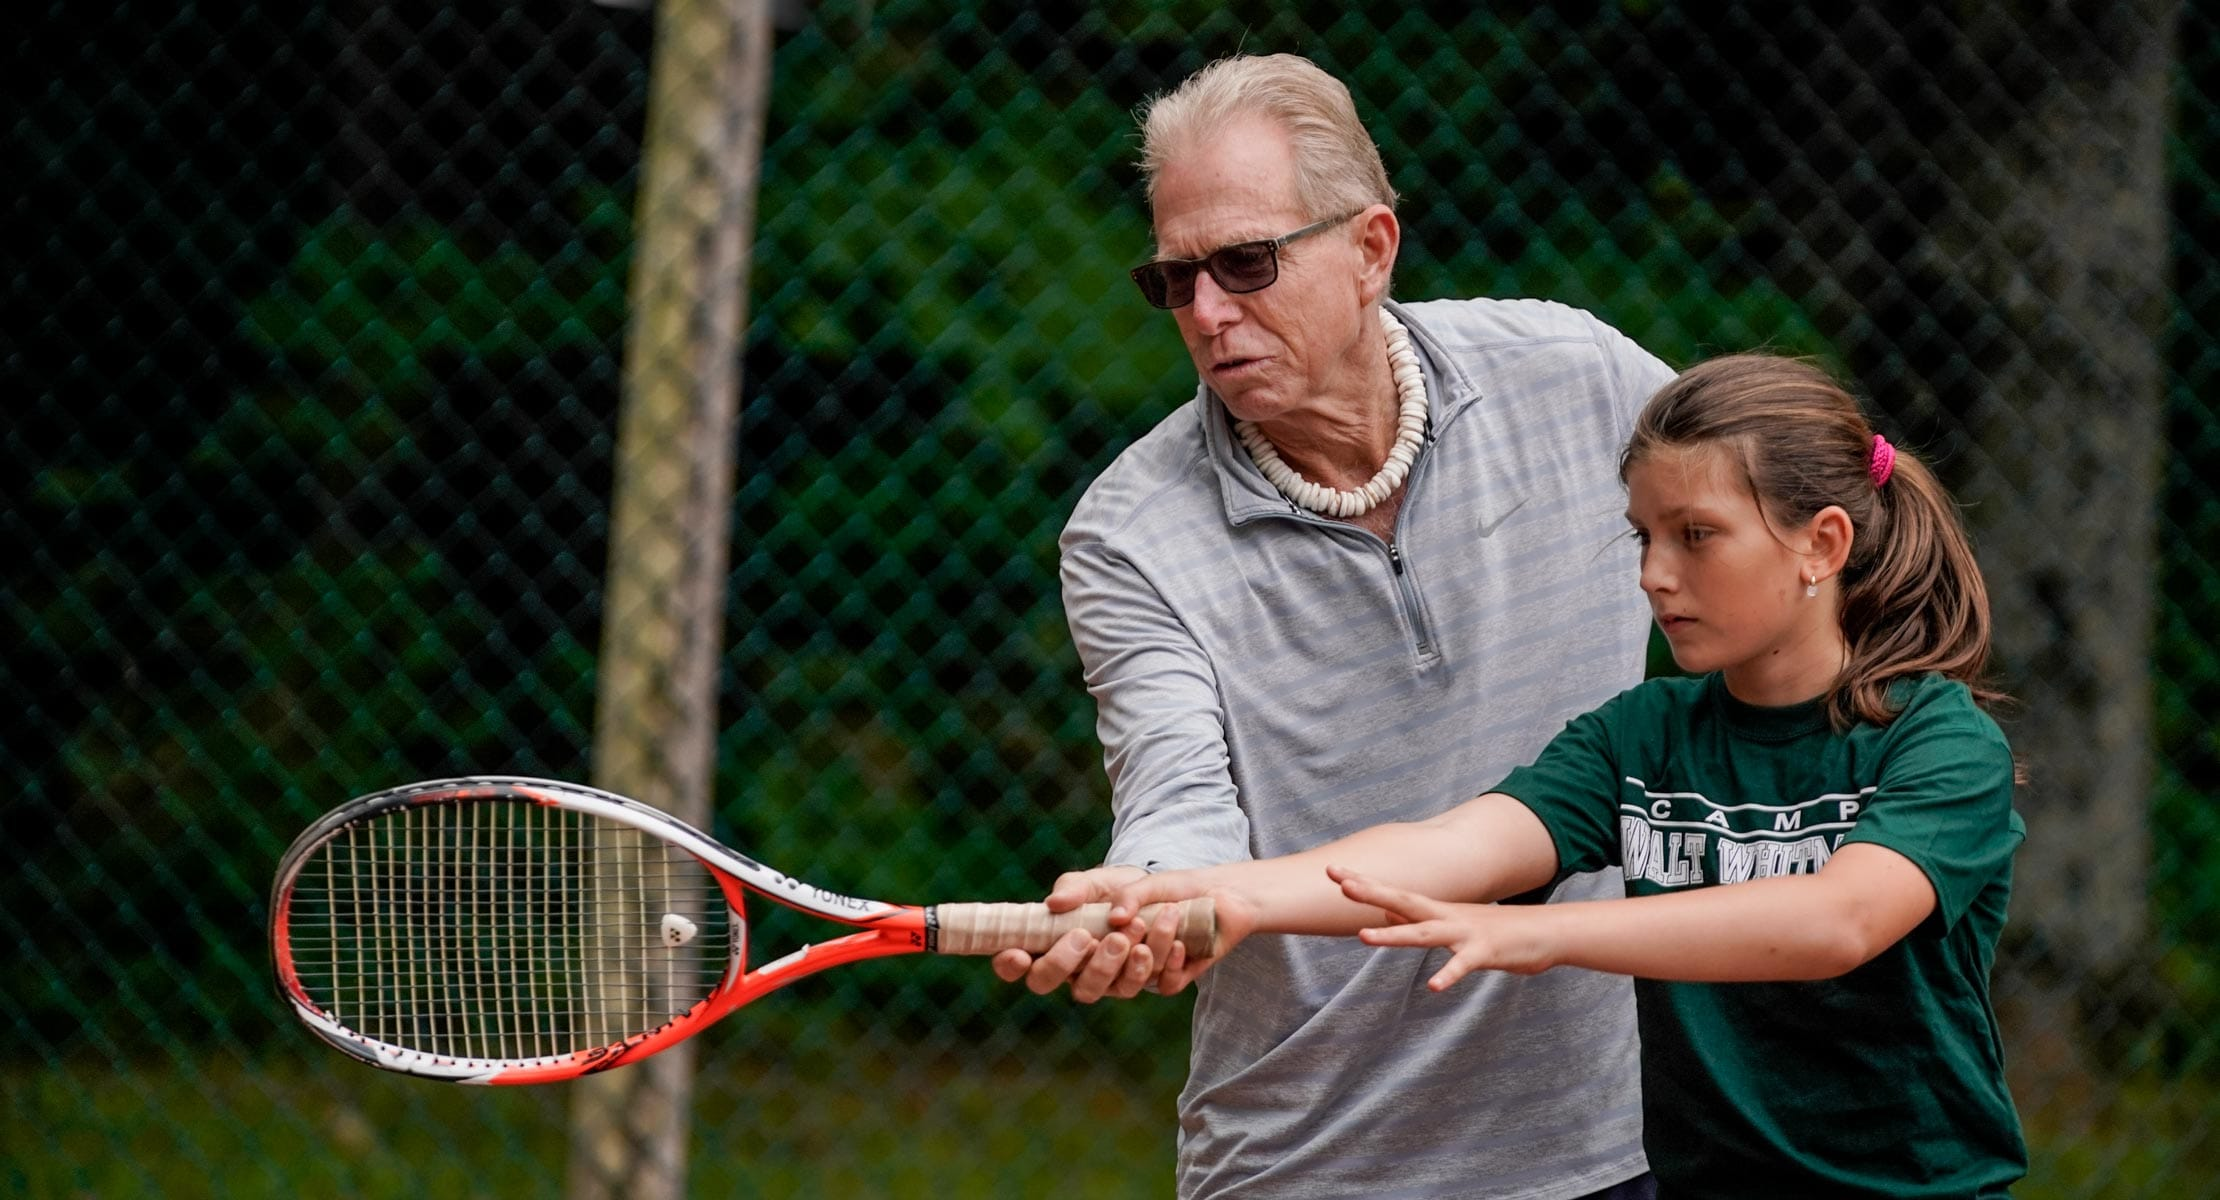 man showing young girl how to swing tennis racket